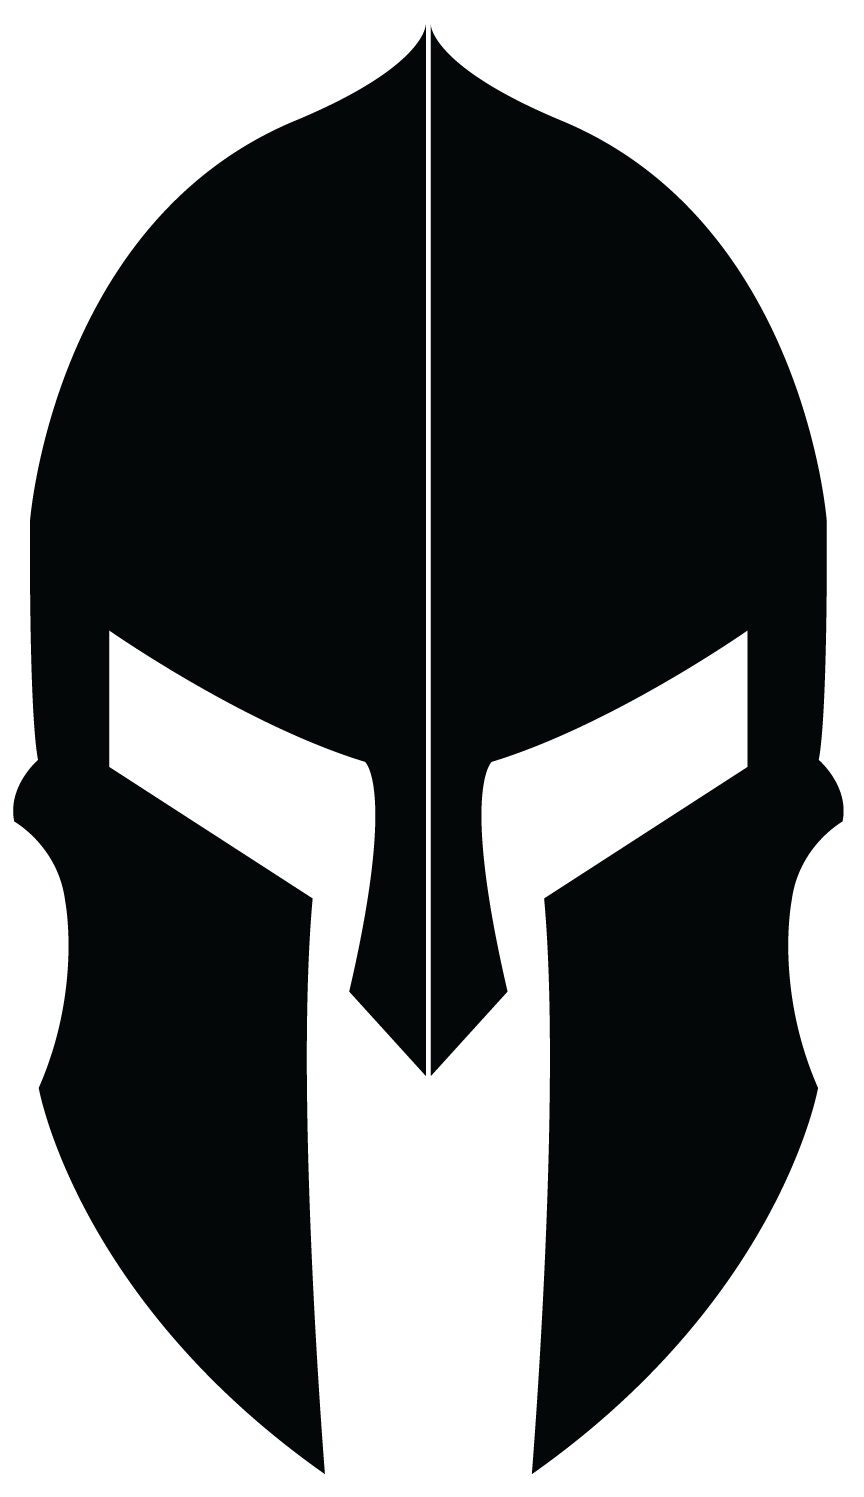 Archangel vector skull spartan. Logo design for helmet